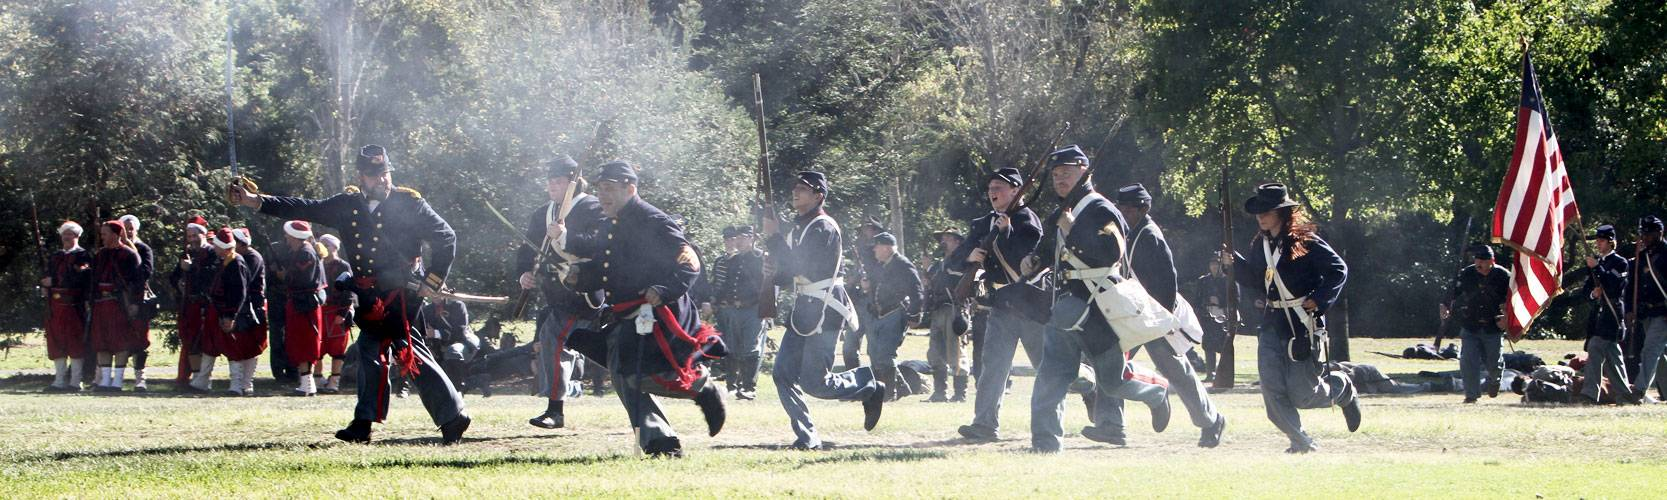 Marines charge Confederate battery (2010)